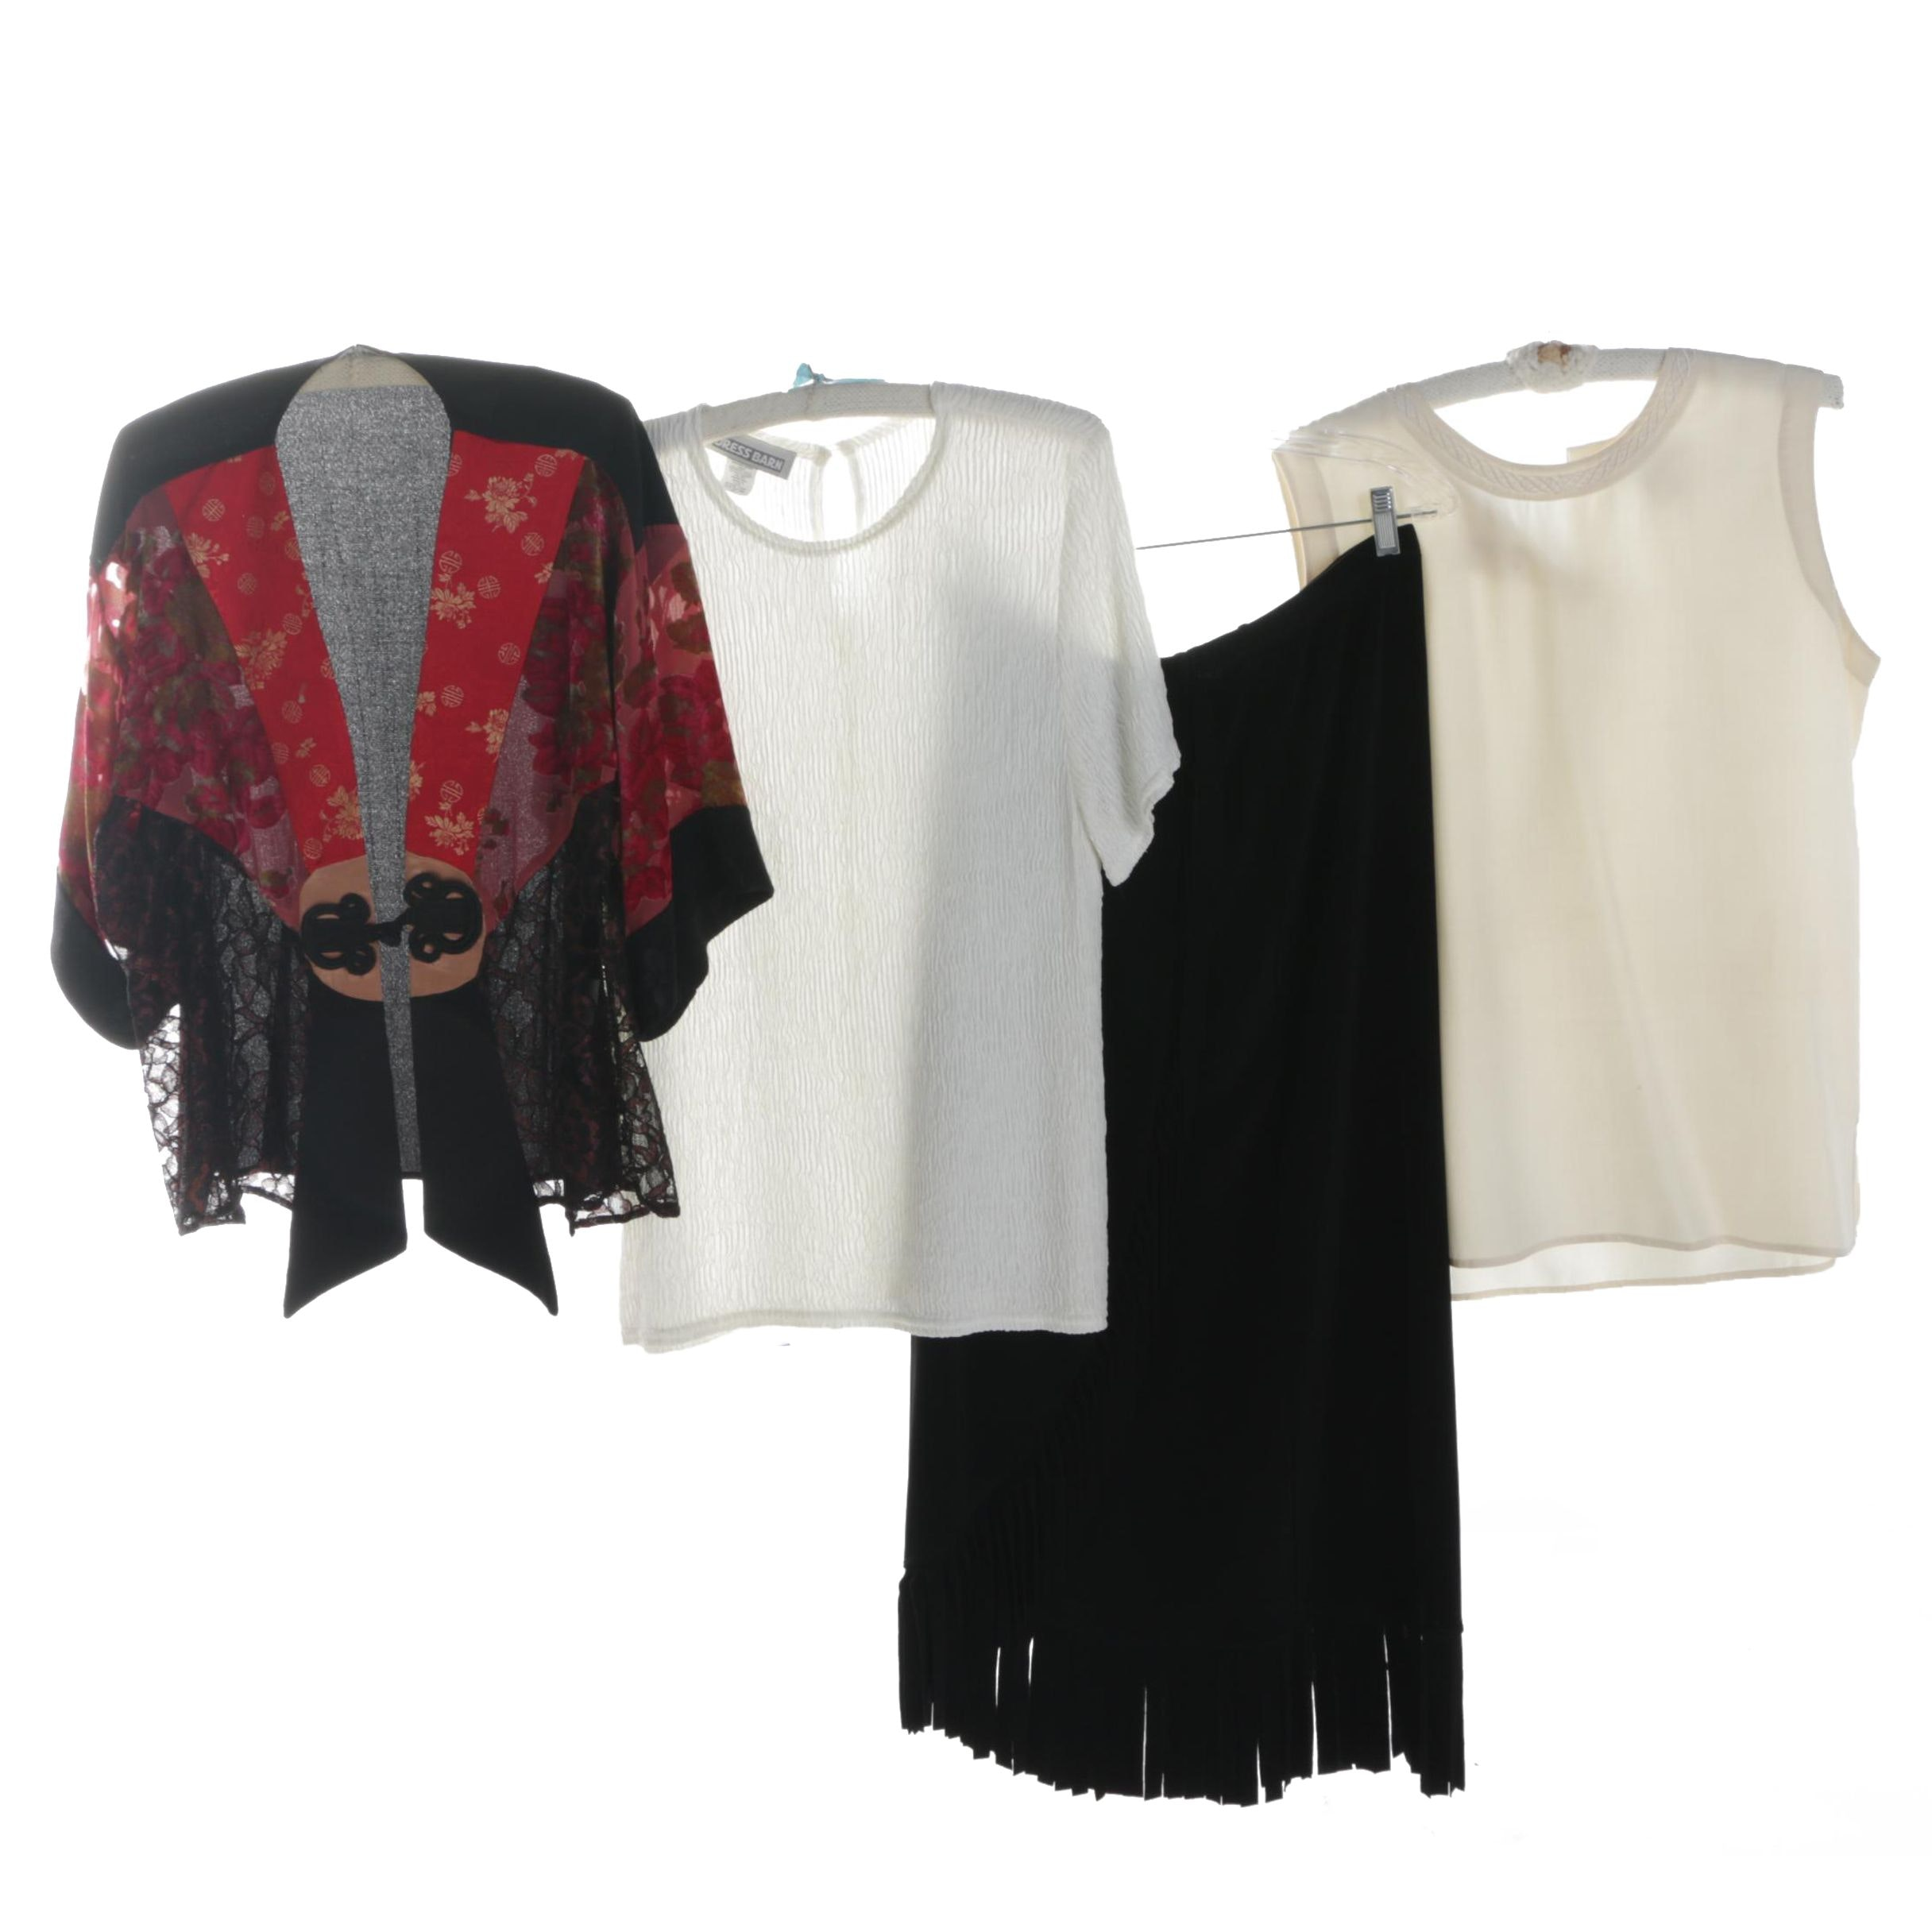 Women's Tops and Skirt